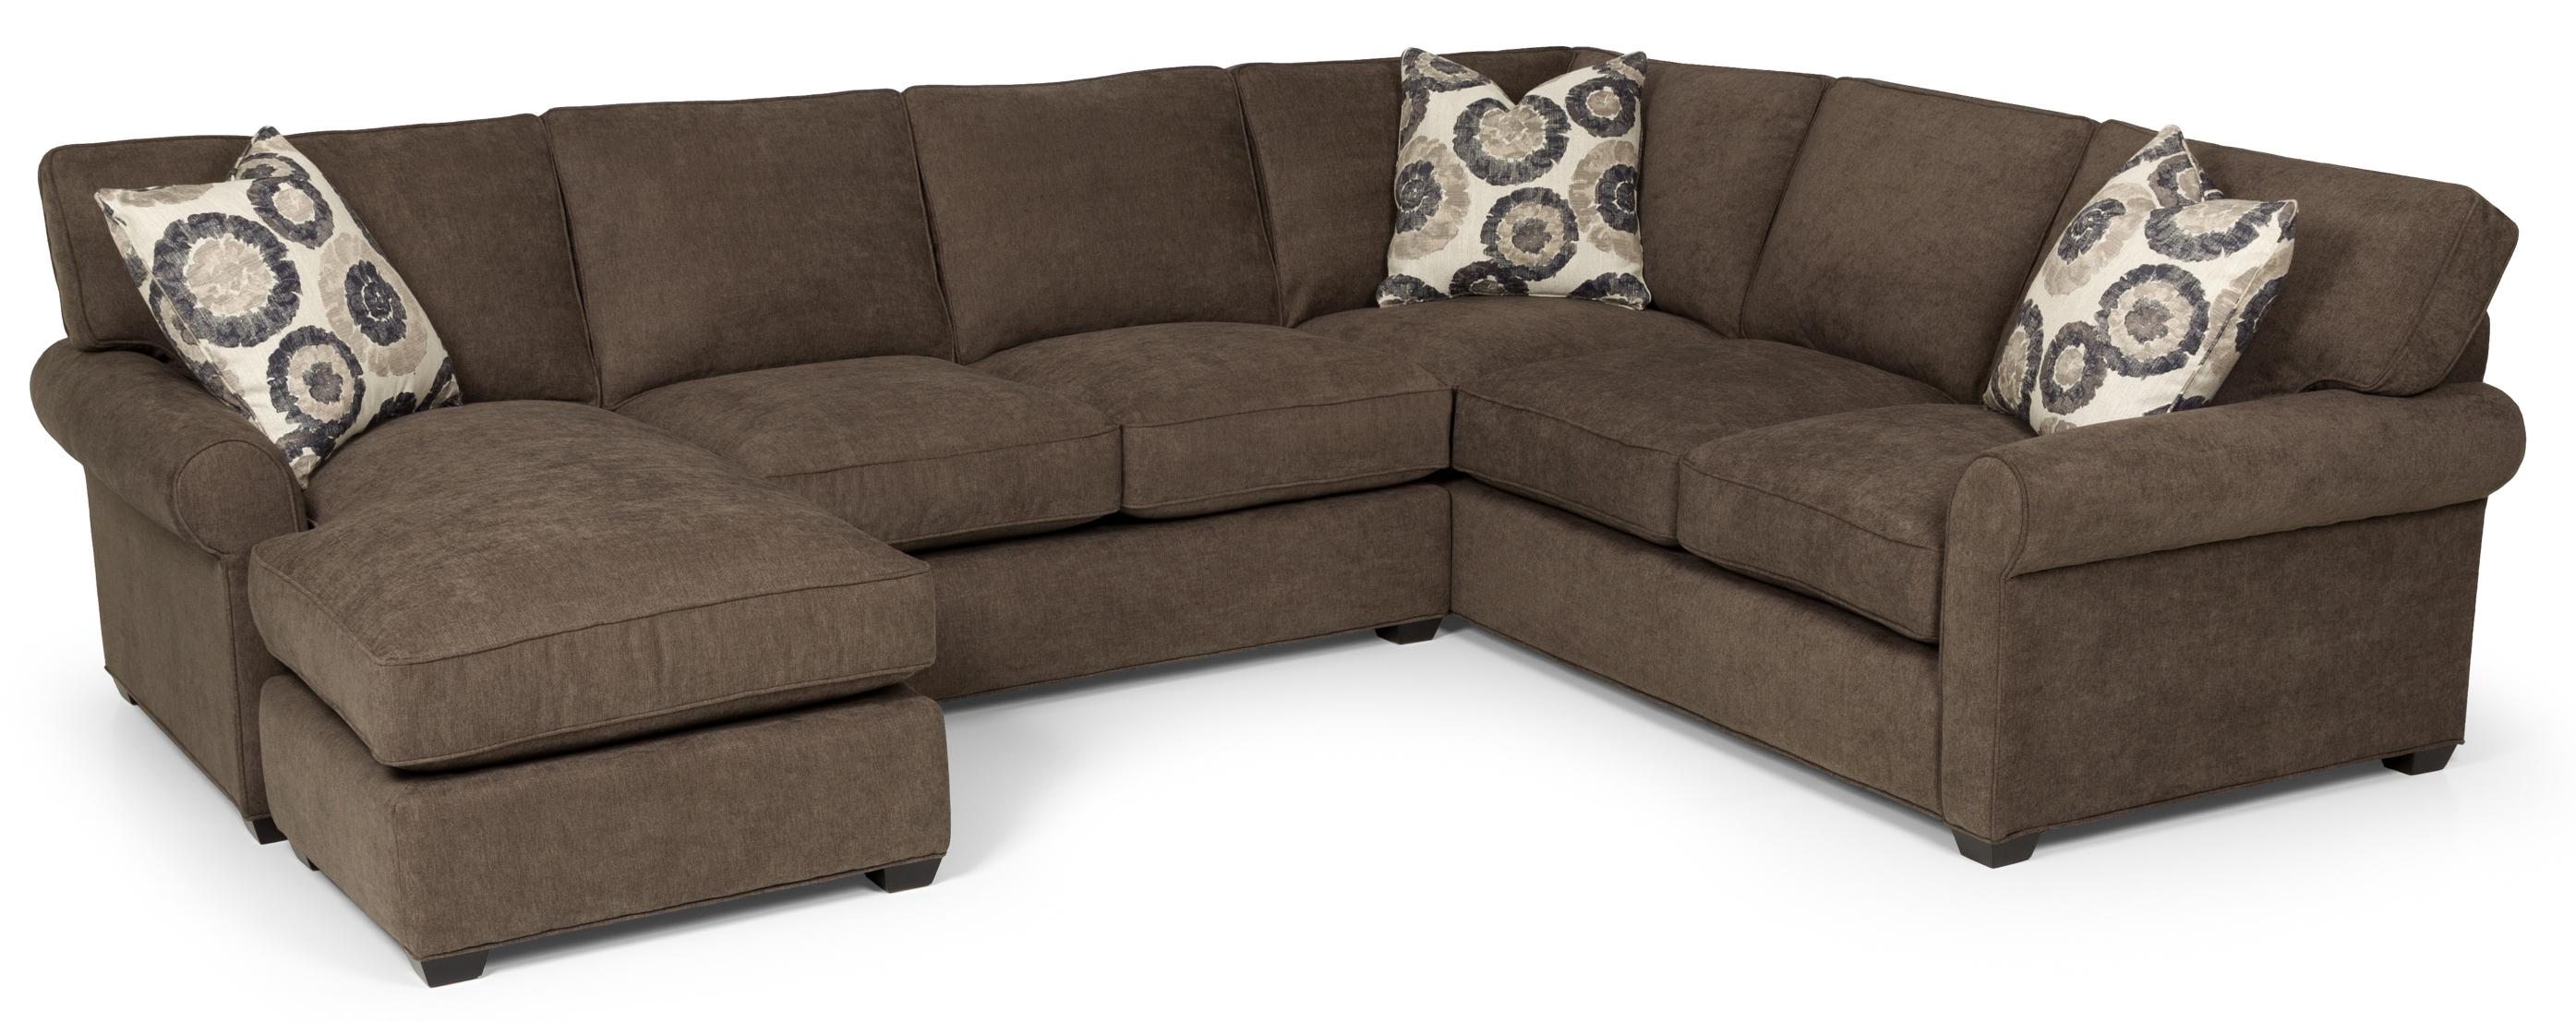 225 Transitional 2 Piece Sectional Sofa by Sunset Home at Sadler's Home Furnishings